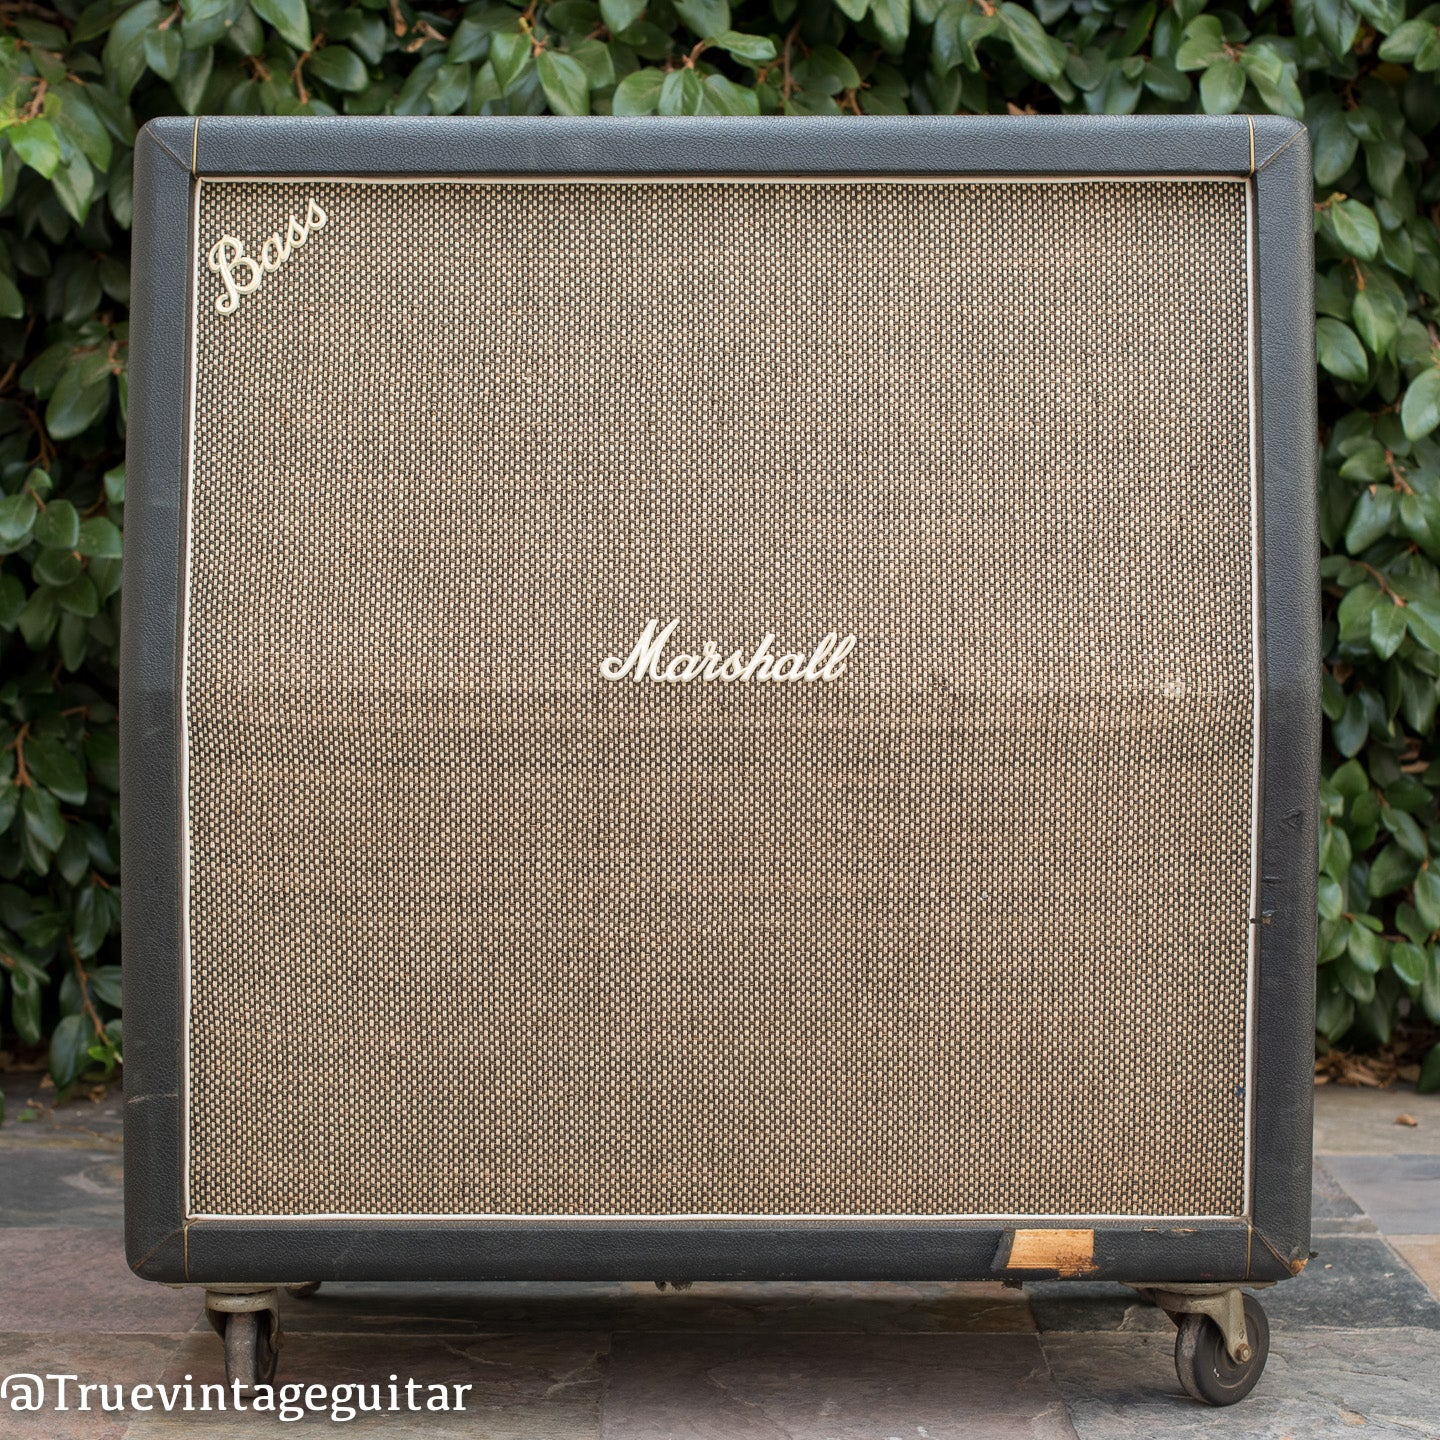 Where to sell vintage Marshall amp